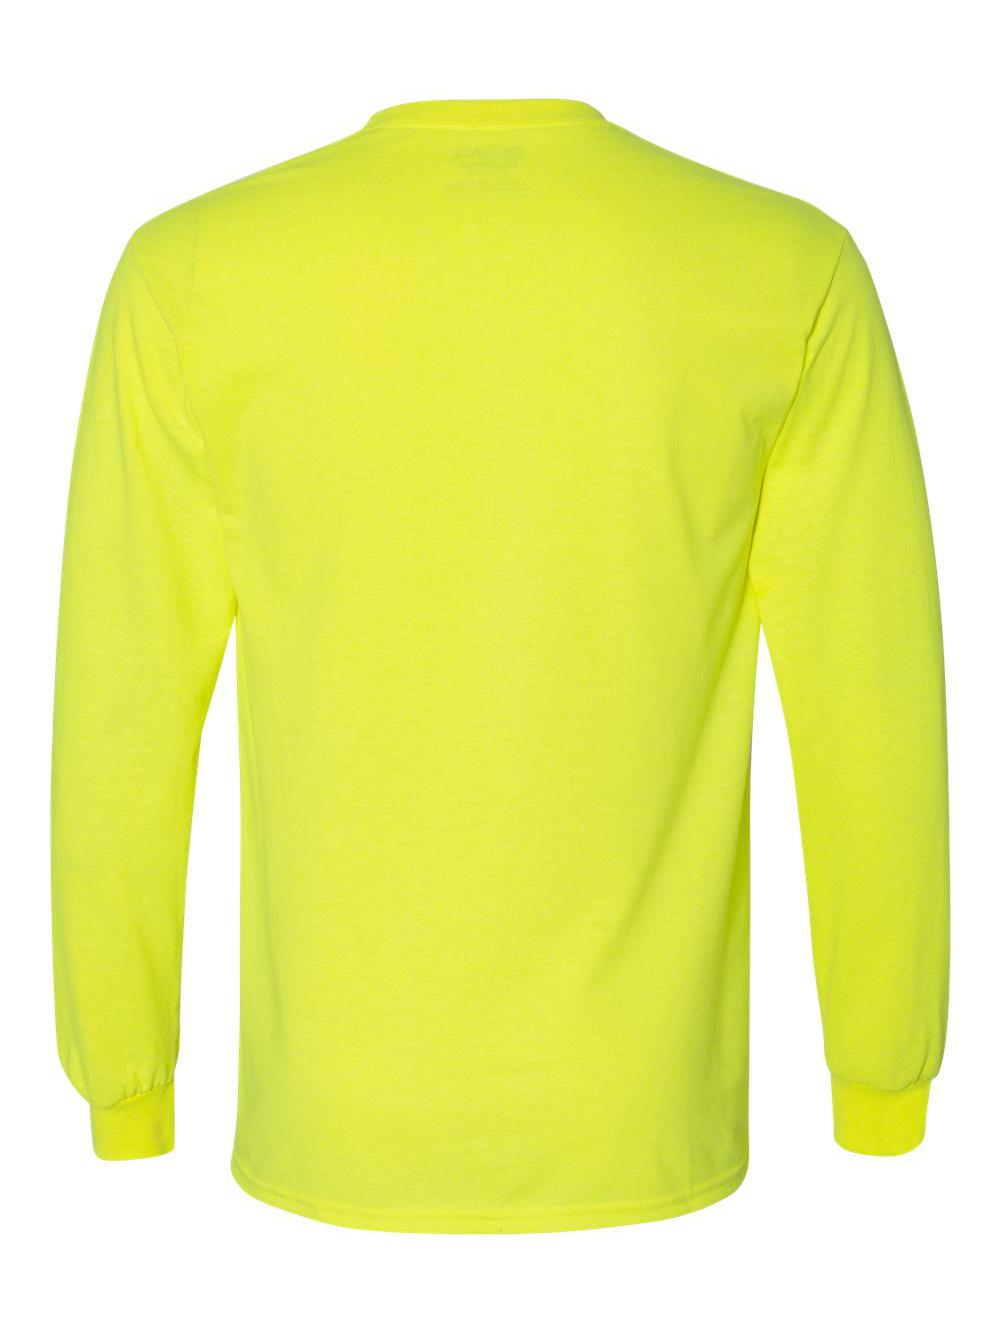 Gildan-DryBlend-50-50-Long-Sleeve-T-Shirt-8400 thumbnail 40